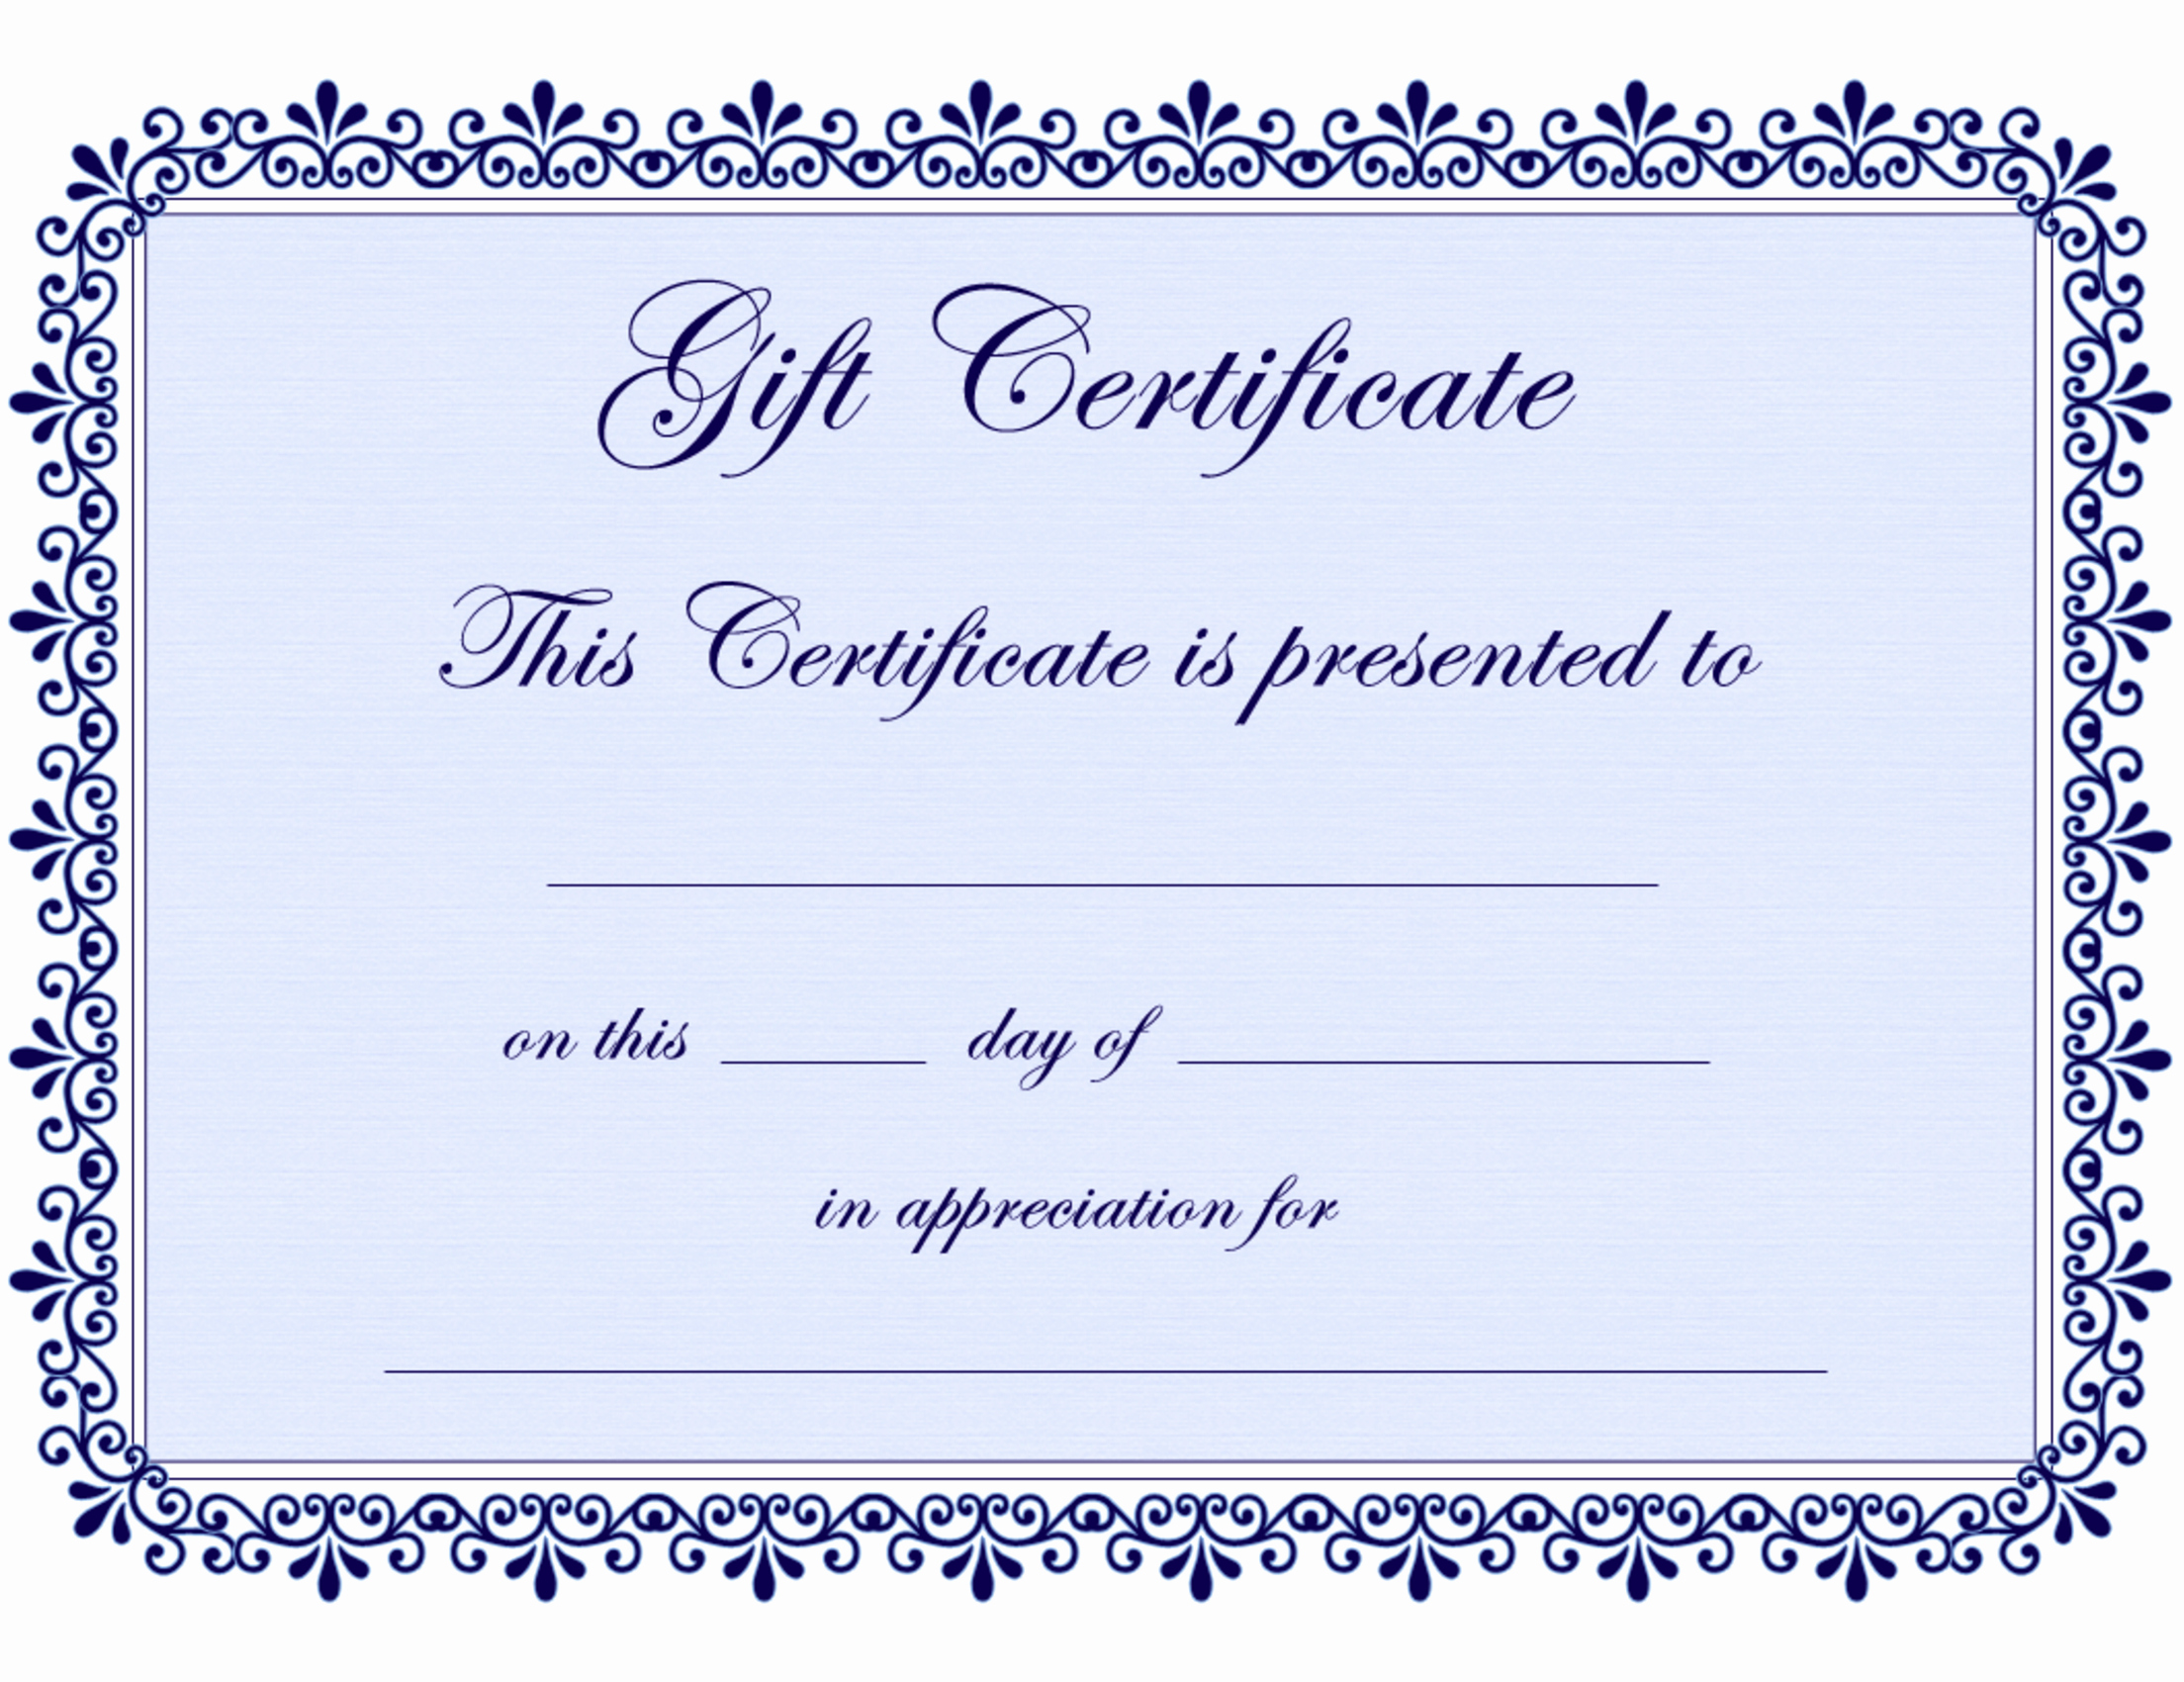 Free Printable Gift Certificate Templates Elegant Certificate Templates